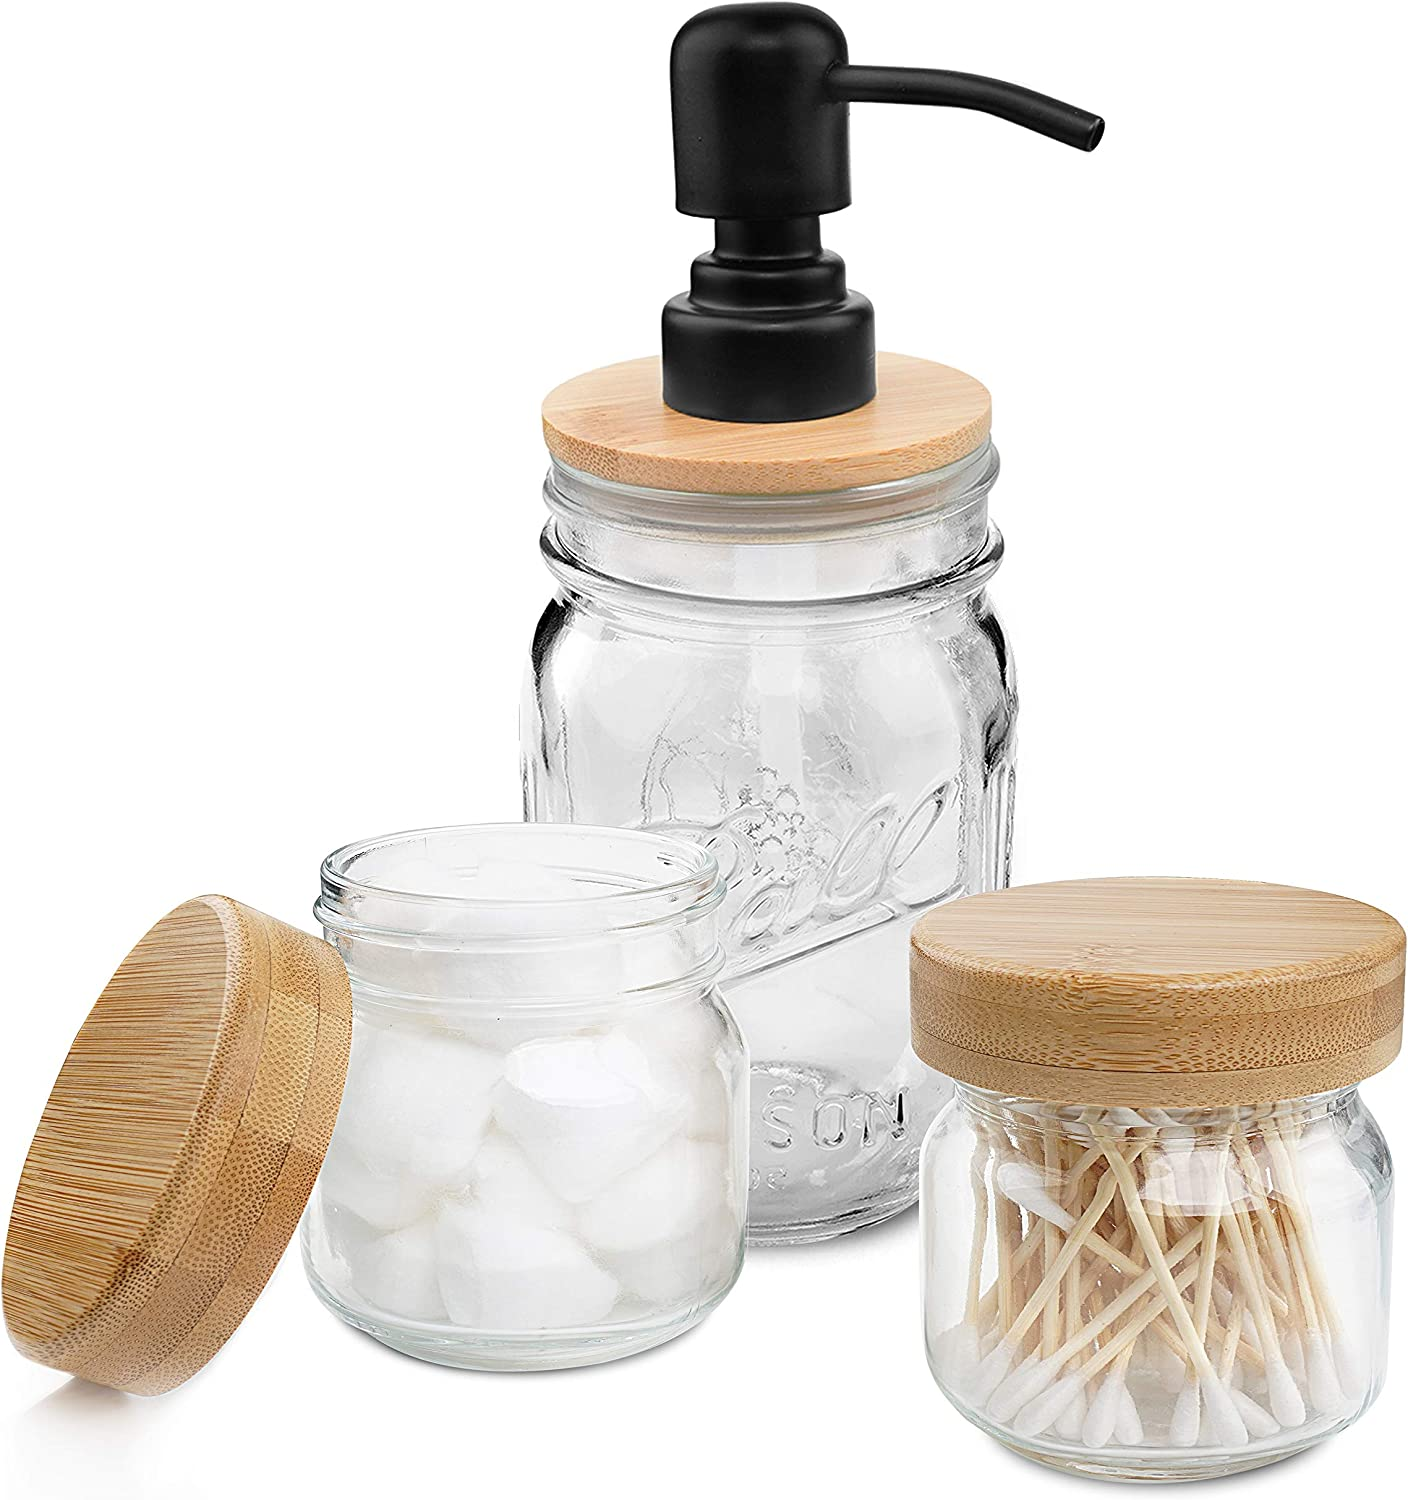 Mason Jar Bathroom Accessories Set, Includes Liquid Hand Mason Jar Soap Dispenser and 2 Apothecary Jars with Bamboo Lids-Rustic Farmhouse Decor Apothecary Jars Bathroom Countertop and Vanity Organizer